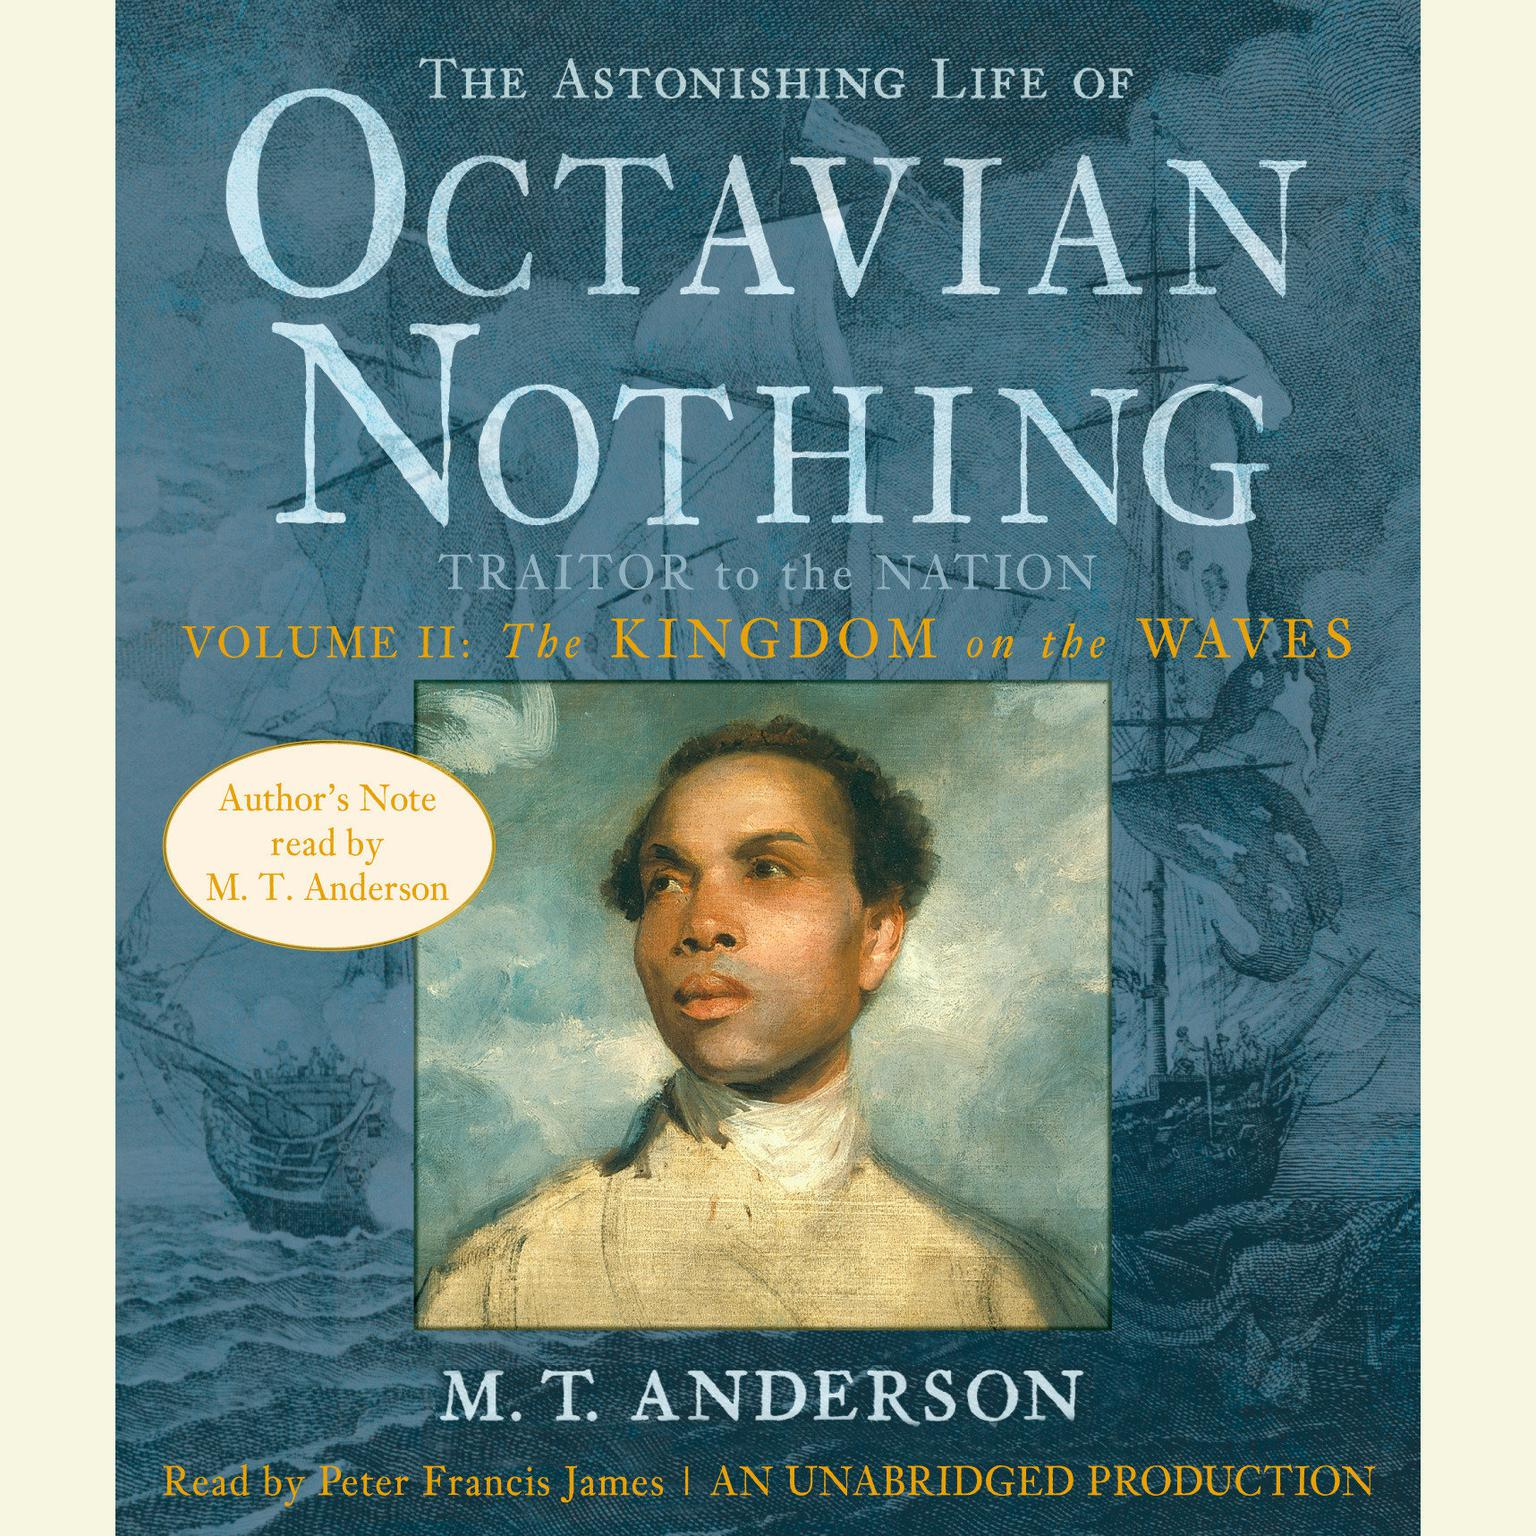 Printable The Astonishing Life of Octavian Nothing, Traitor to the Nation, Volume 2: The Kingdom on the Waves: The Kingdom on the Waves Audiobook Cover Art